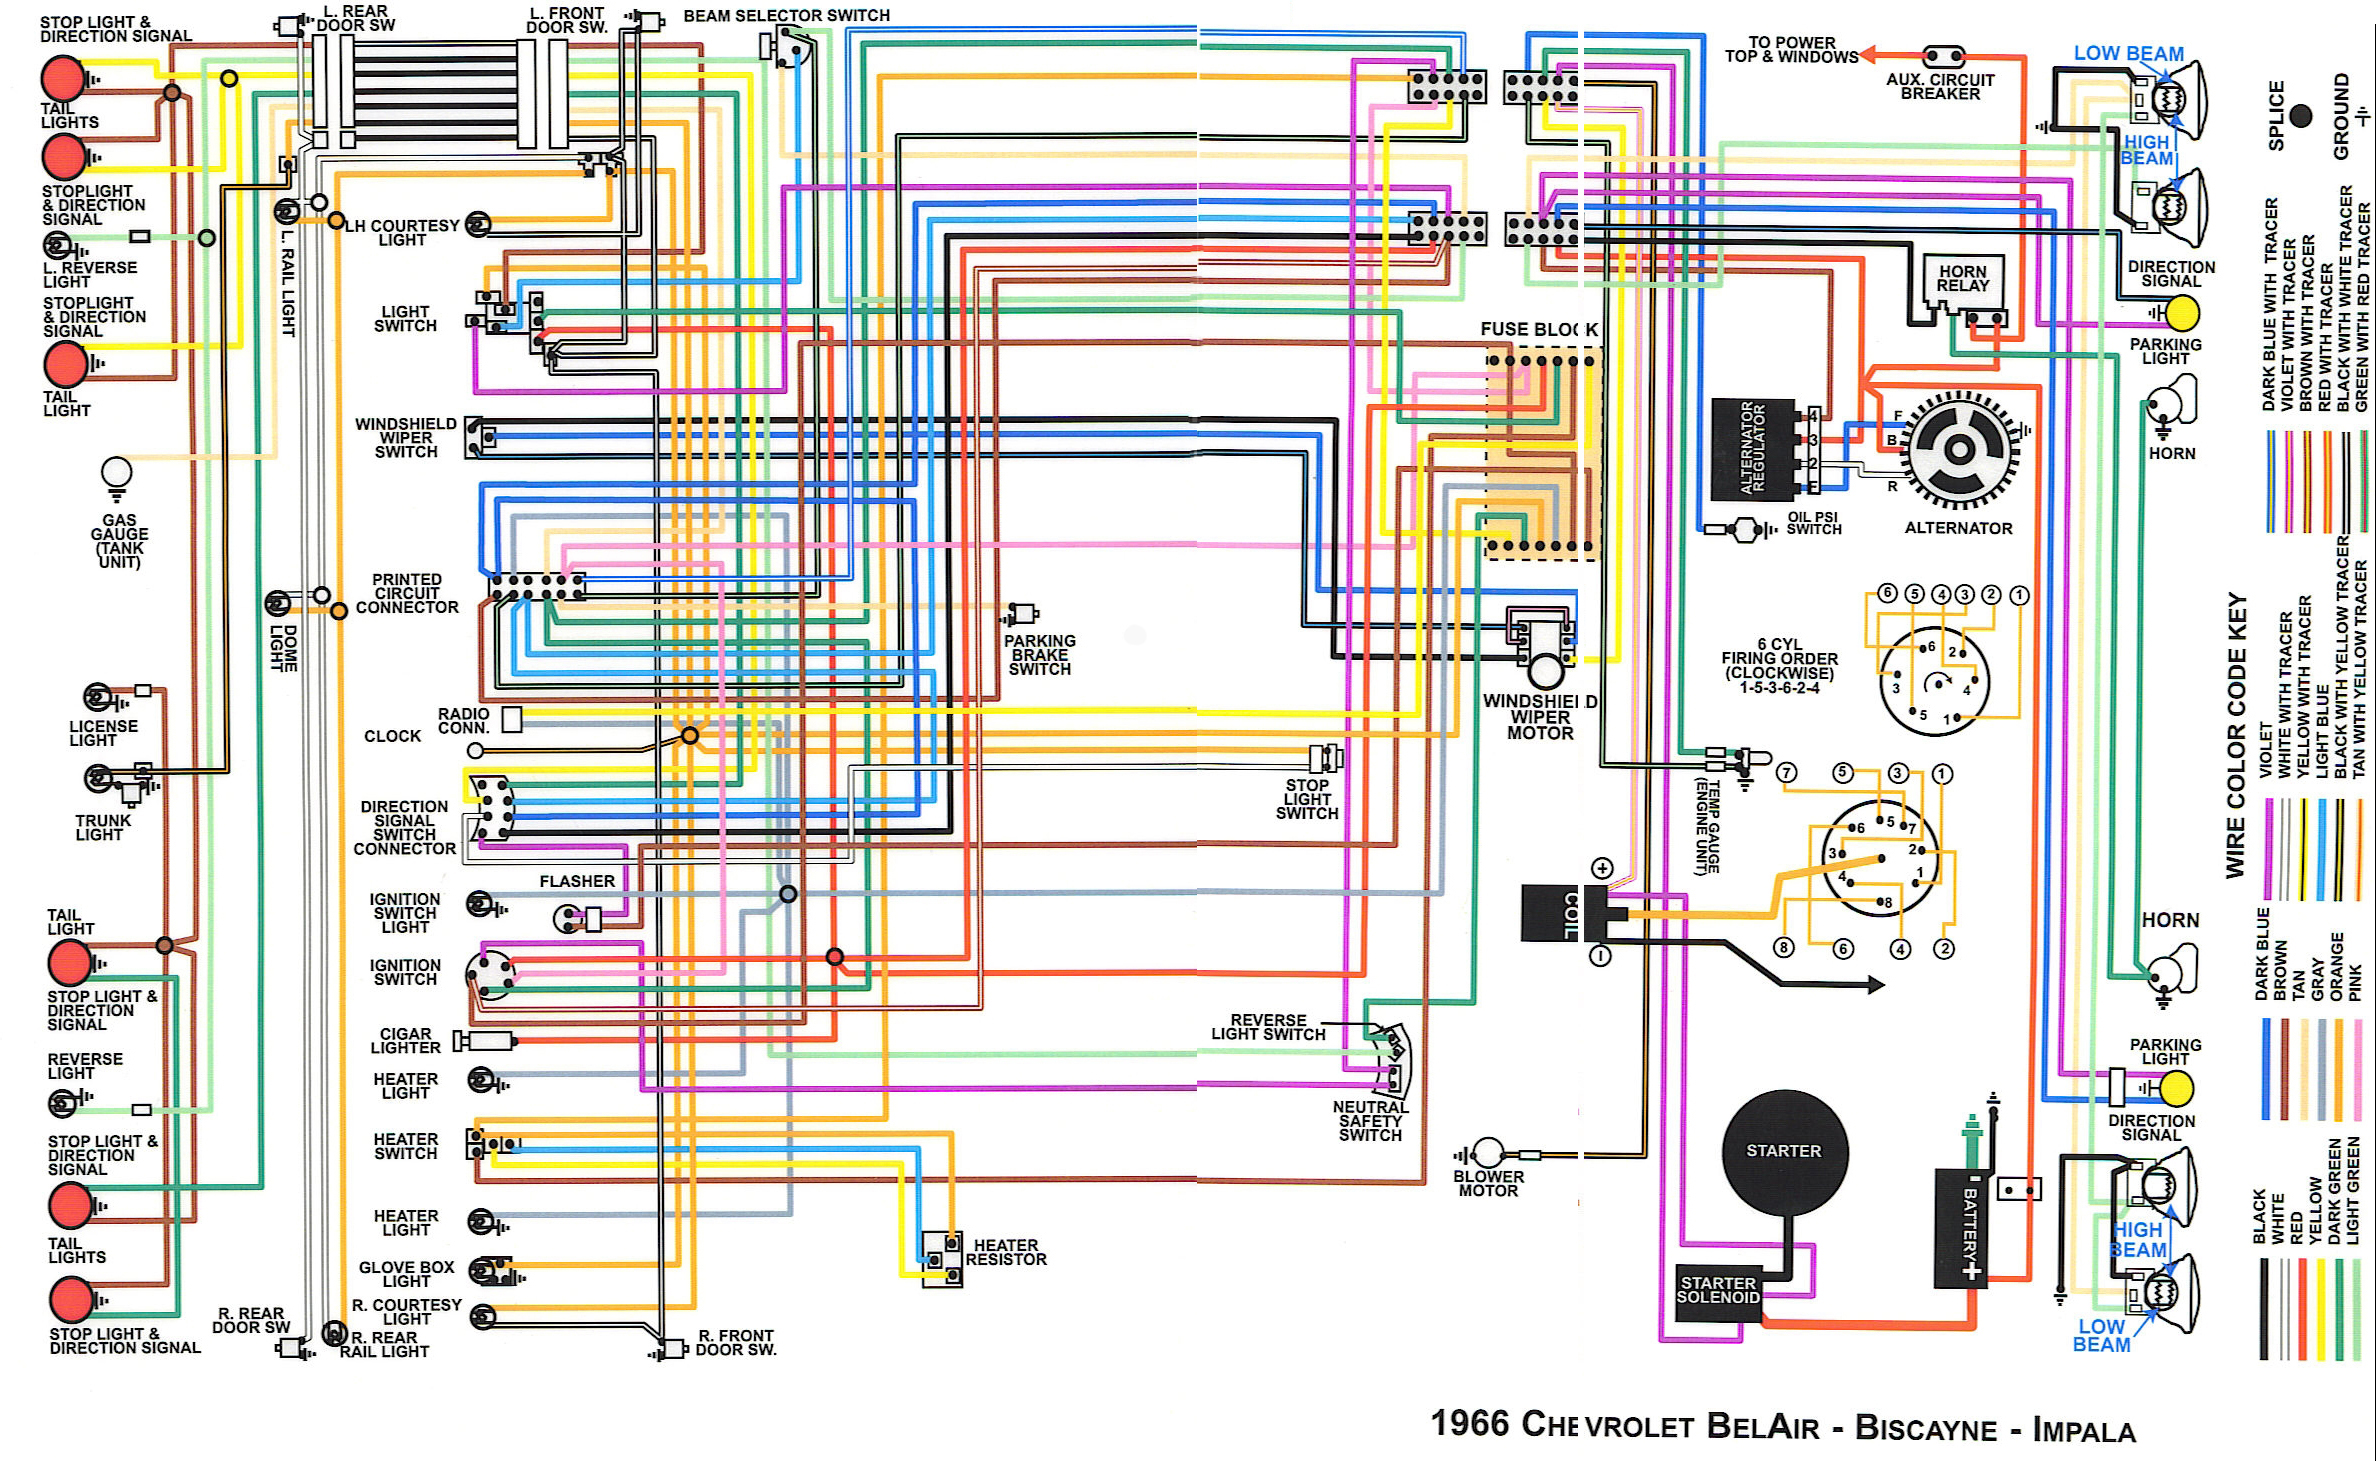 67 gto tach wiring wiring diagramwiring diagram for 1967 pontiac gto wiring diagram1967 pontiac gto wiring diagram color wiring diagram database1967